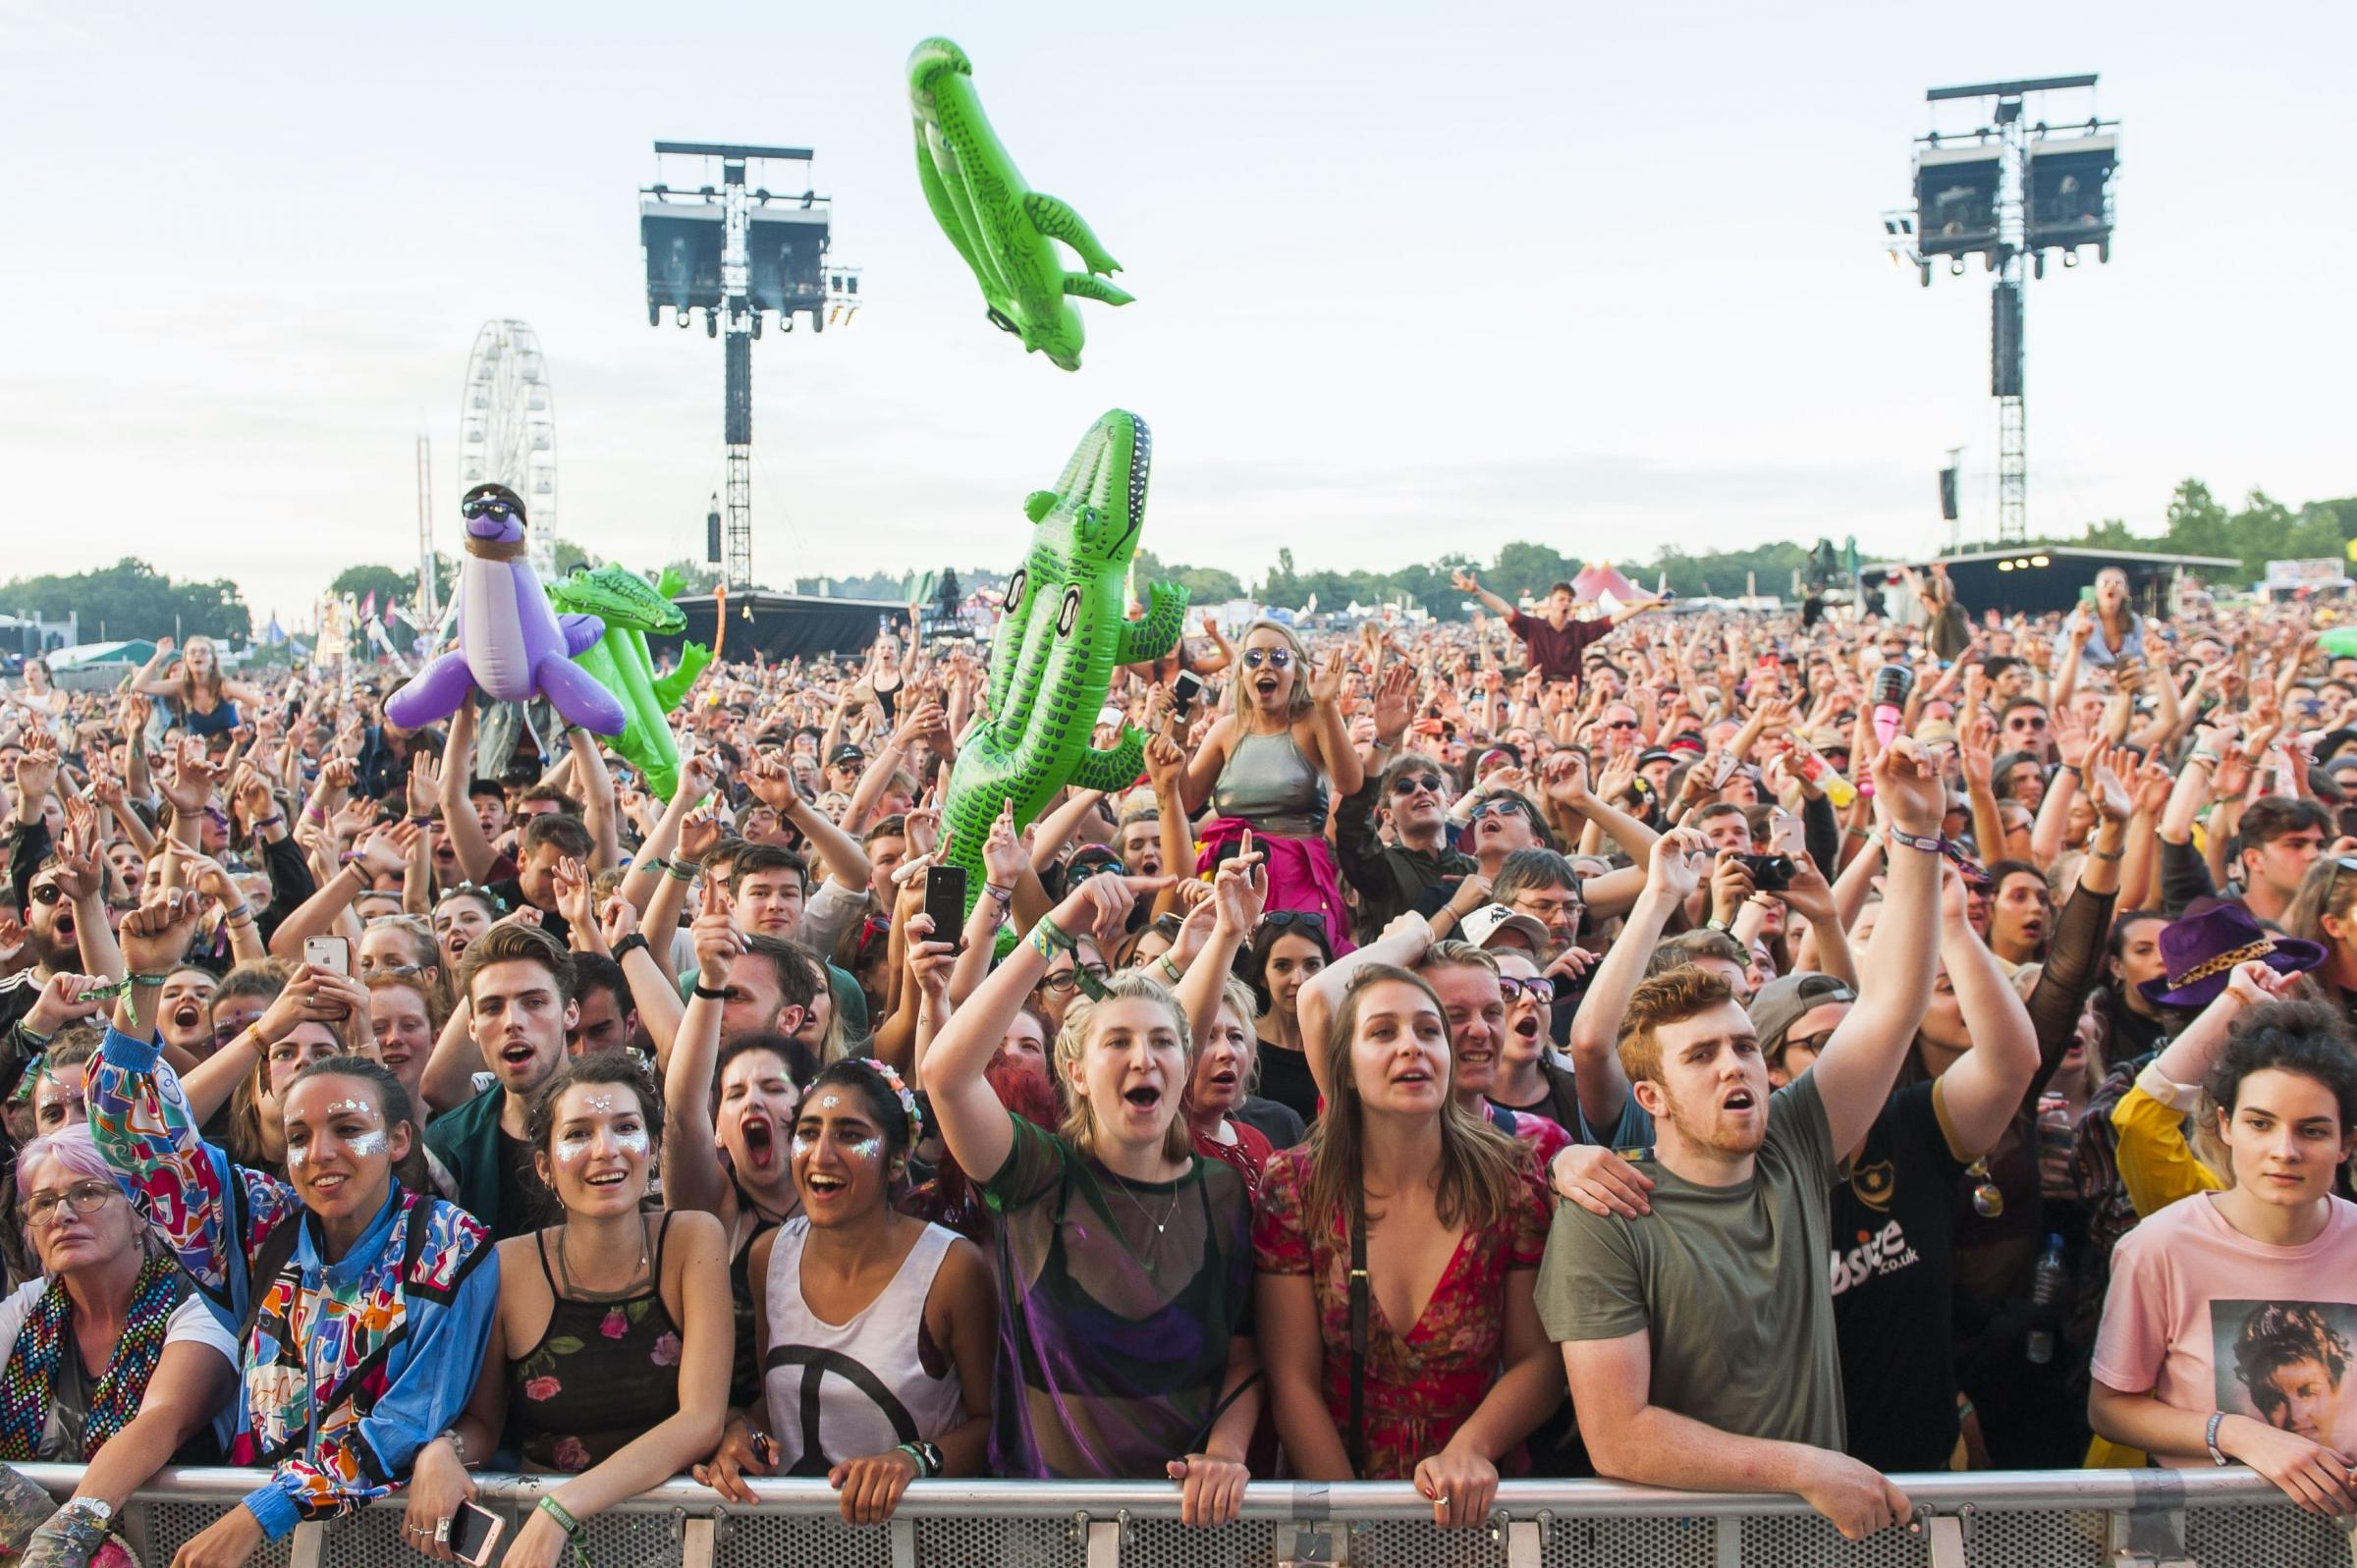 Festival goers in the mainstage crowd during Catfish and the Bottlemen performance on day 3 of the Isle of Wight Festival 2017, Seaclose Park, Isle of Wight. Picture date: Saturday 10th June 2017.  Photo credit should read: © DavidJensen/PA Wire